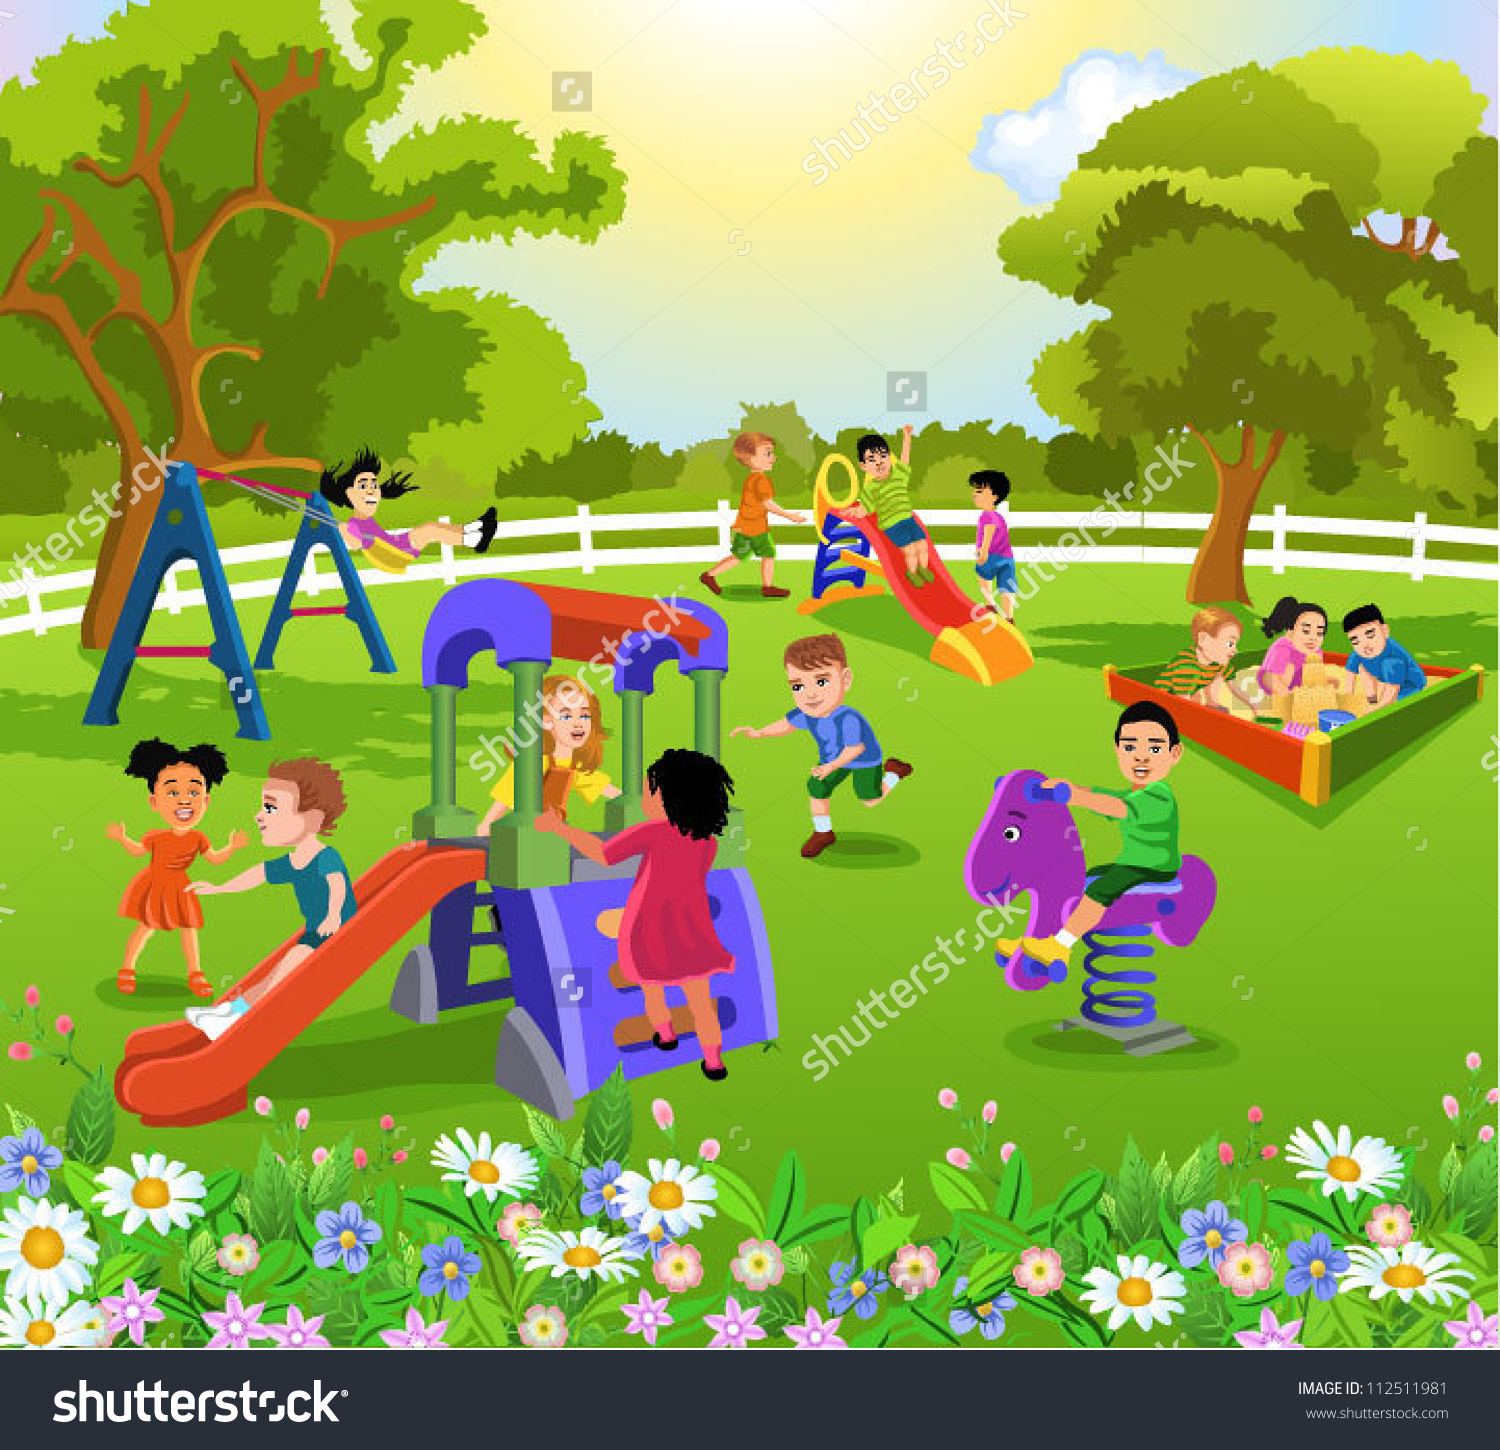 Children park clipart.